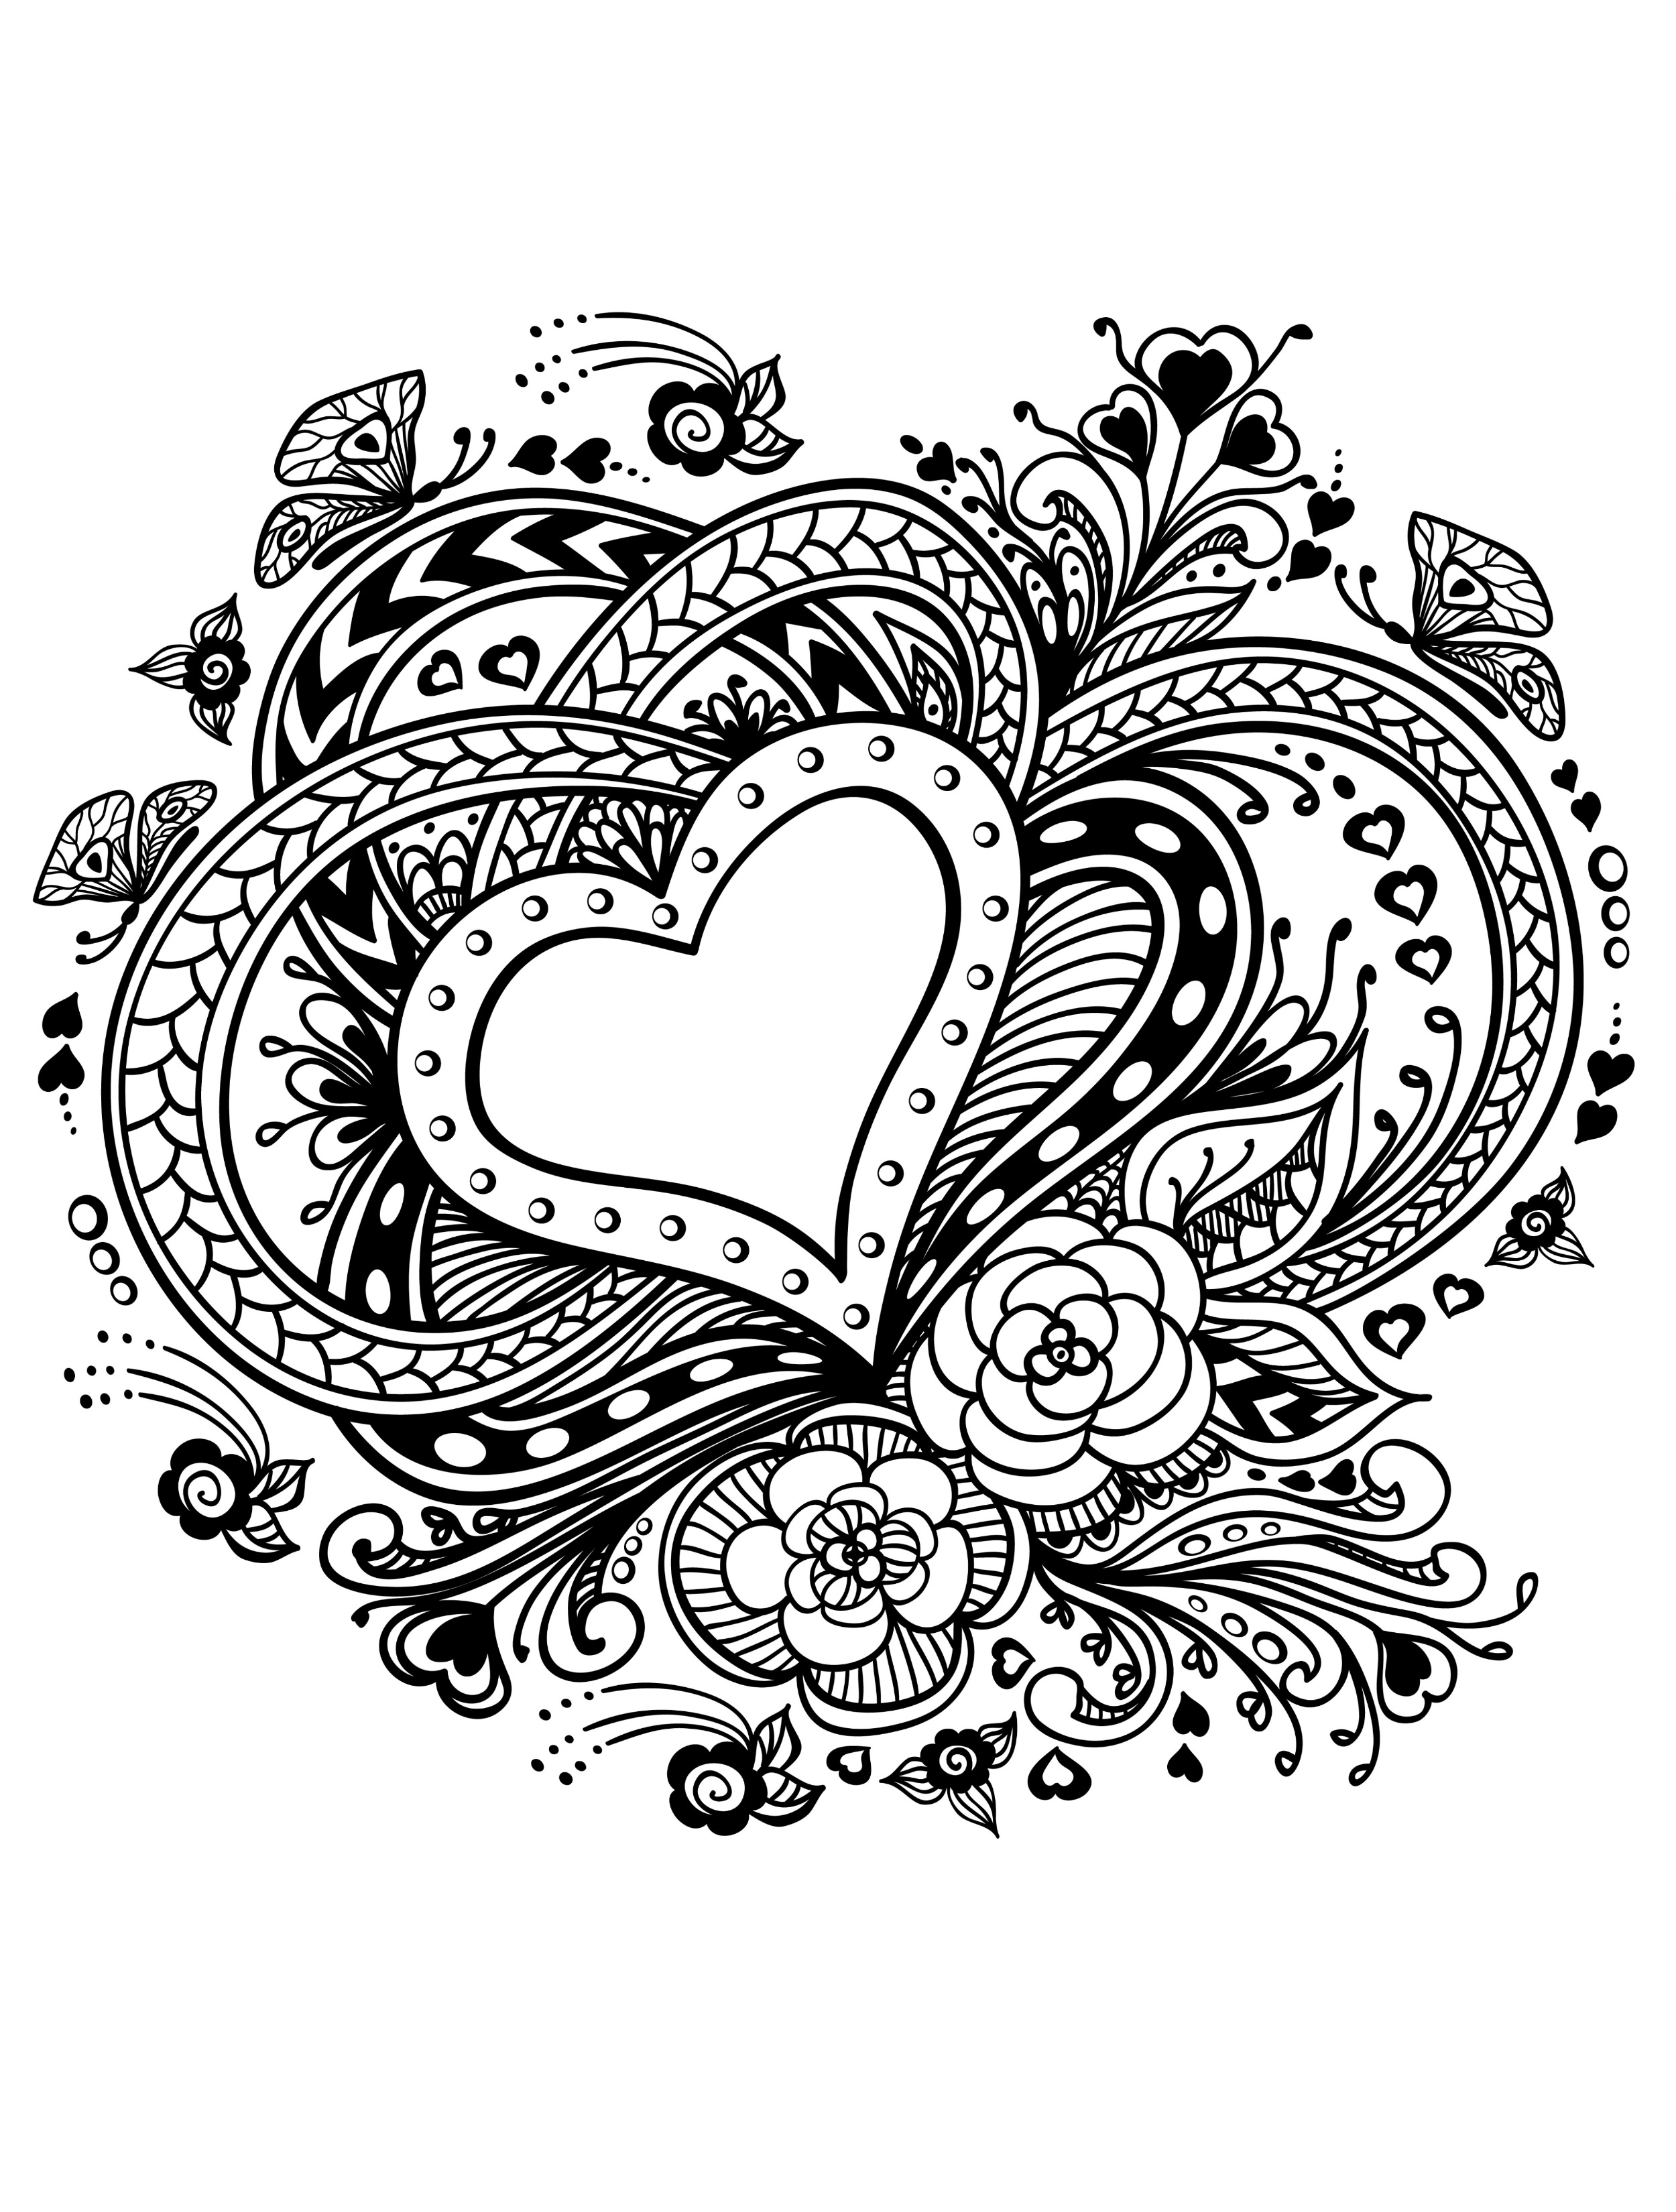 coloring templates for adults 10 toothy adult coloring pages printable off the cusp adults templates coloring for